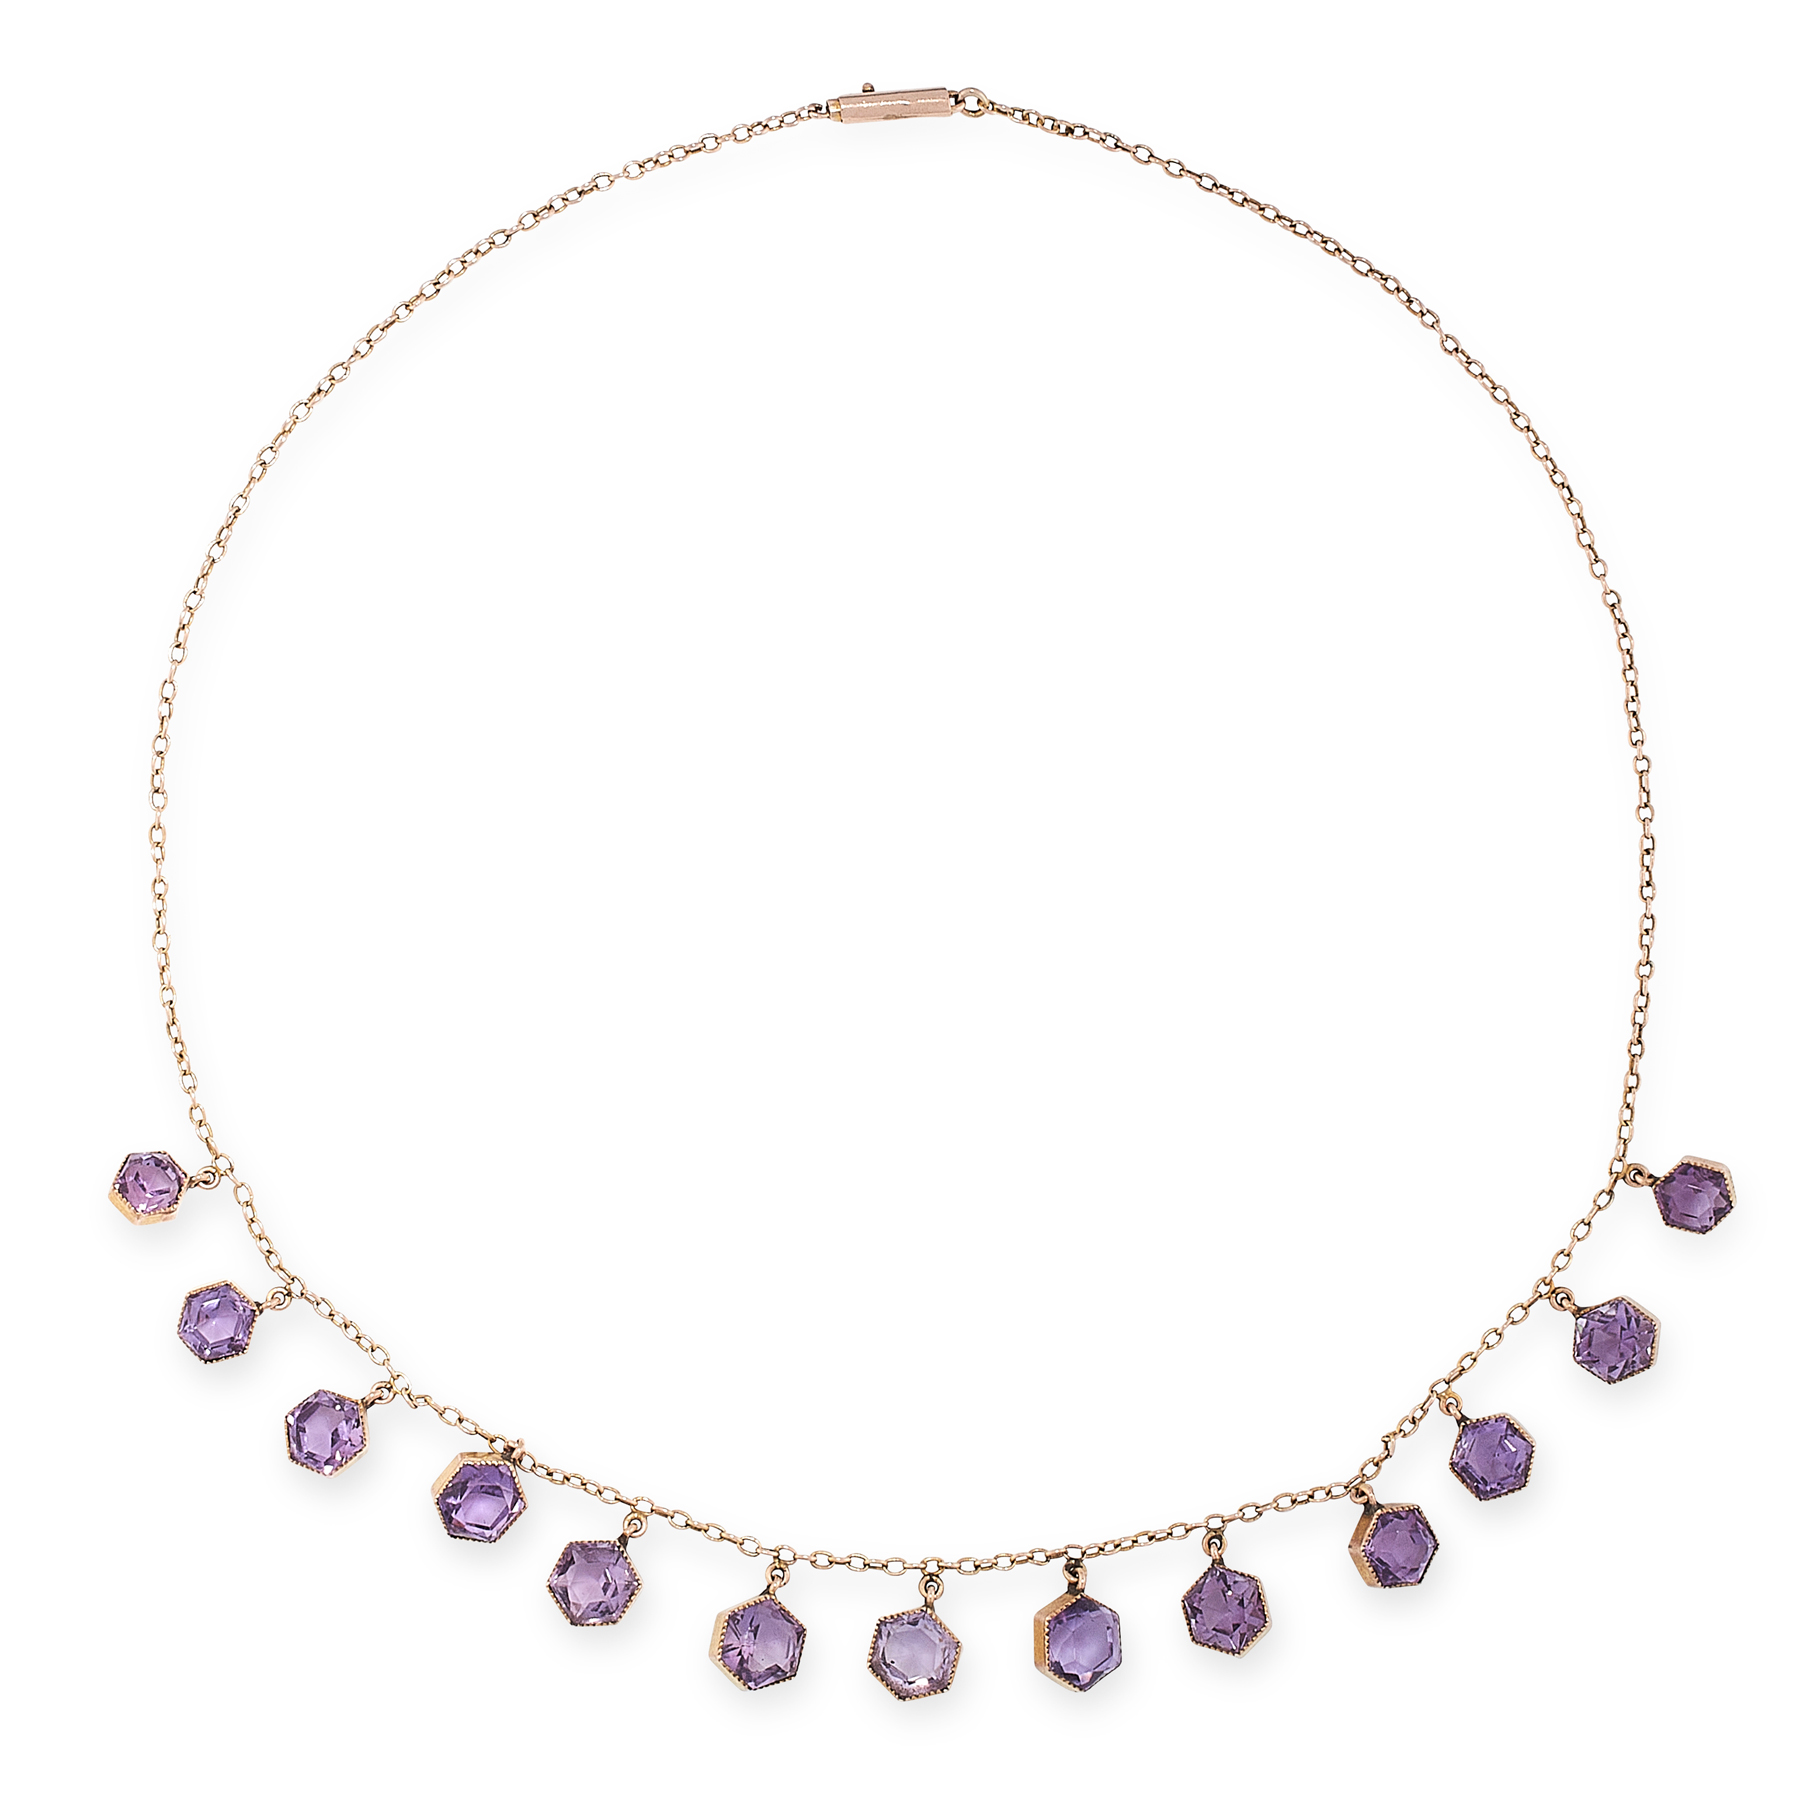 AN ANTIQUE AMETHYST NECKLACE, EARLY 20TH CENTURY in yellow gold, formed of a single row of